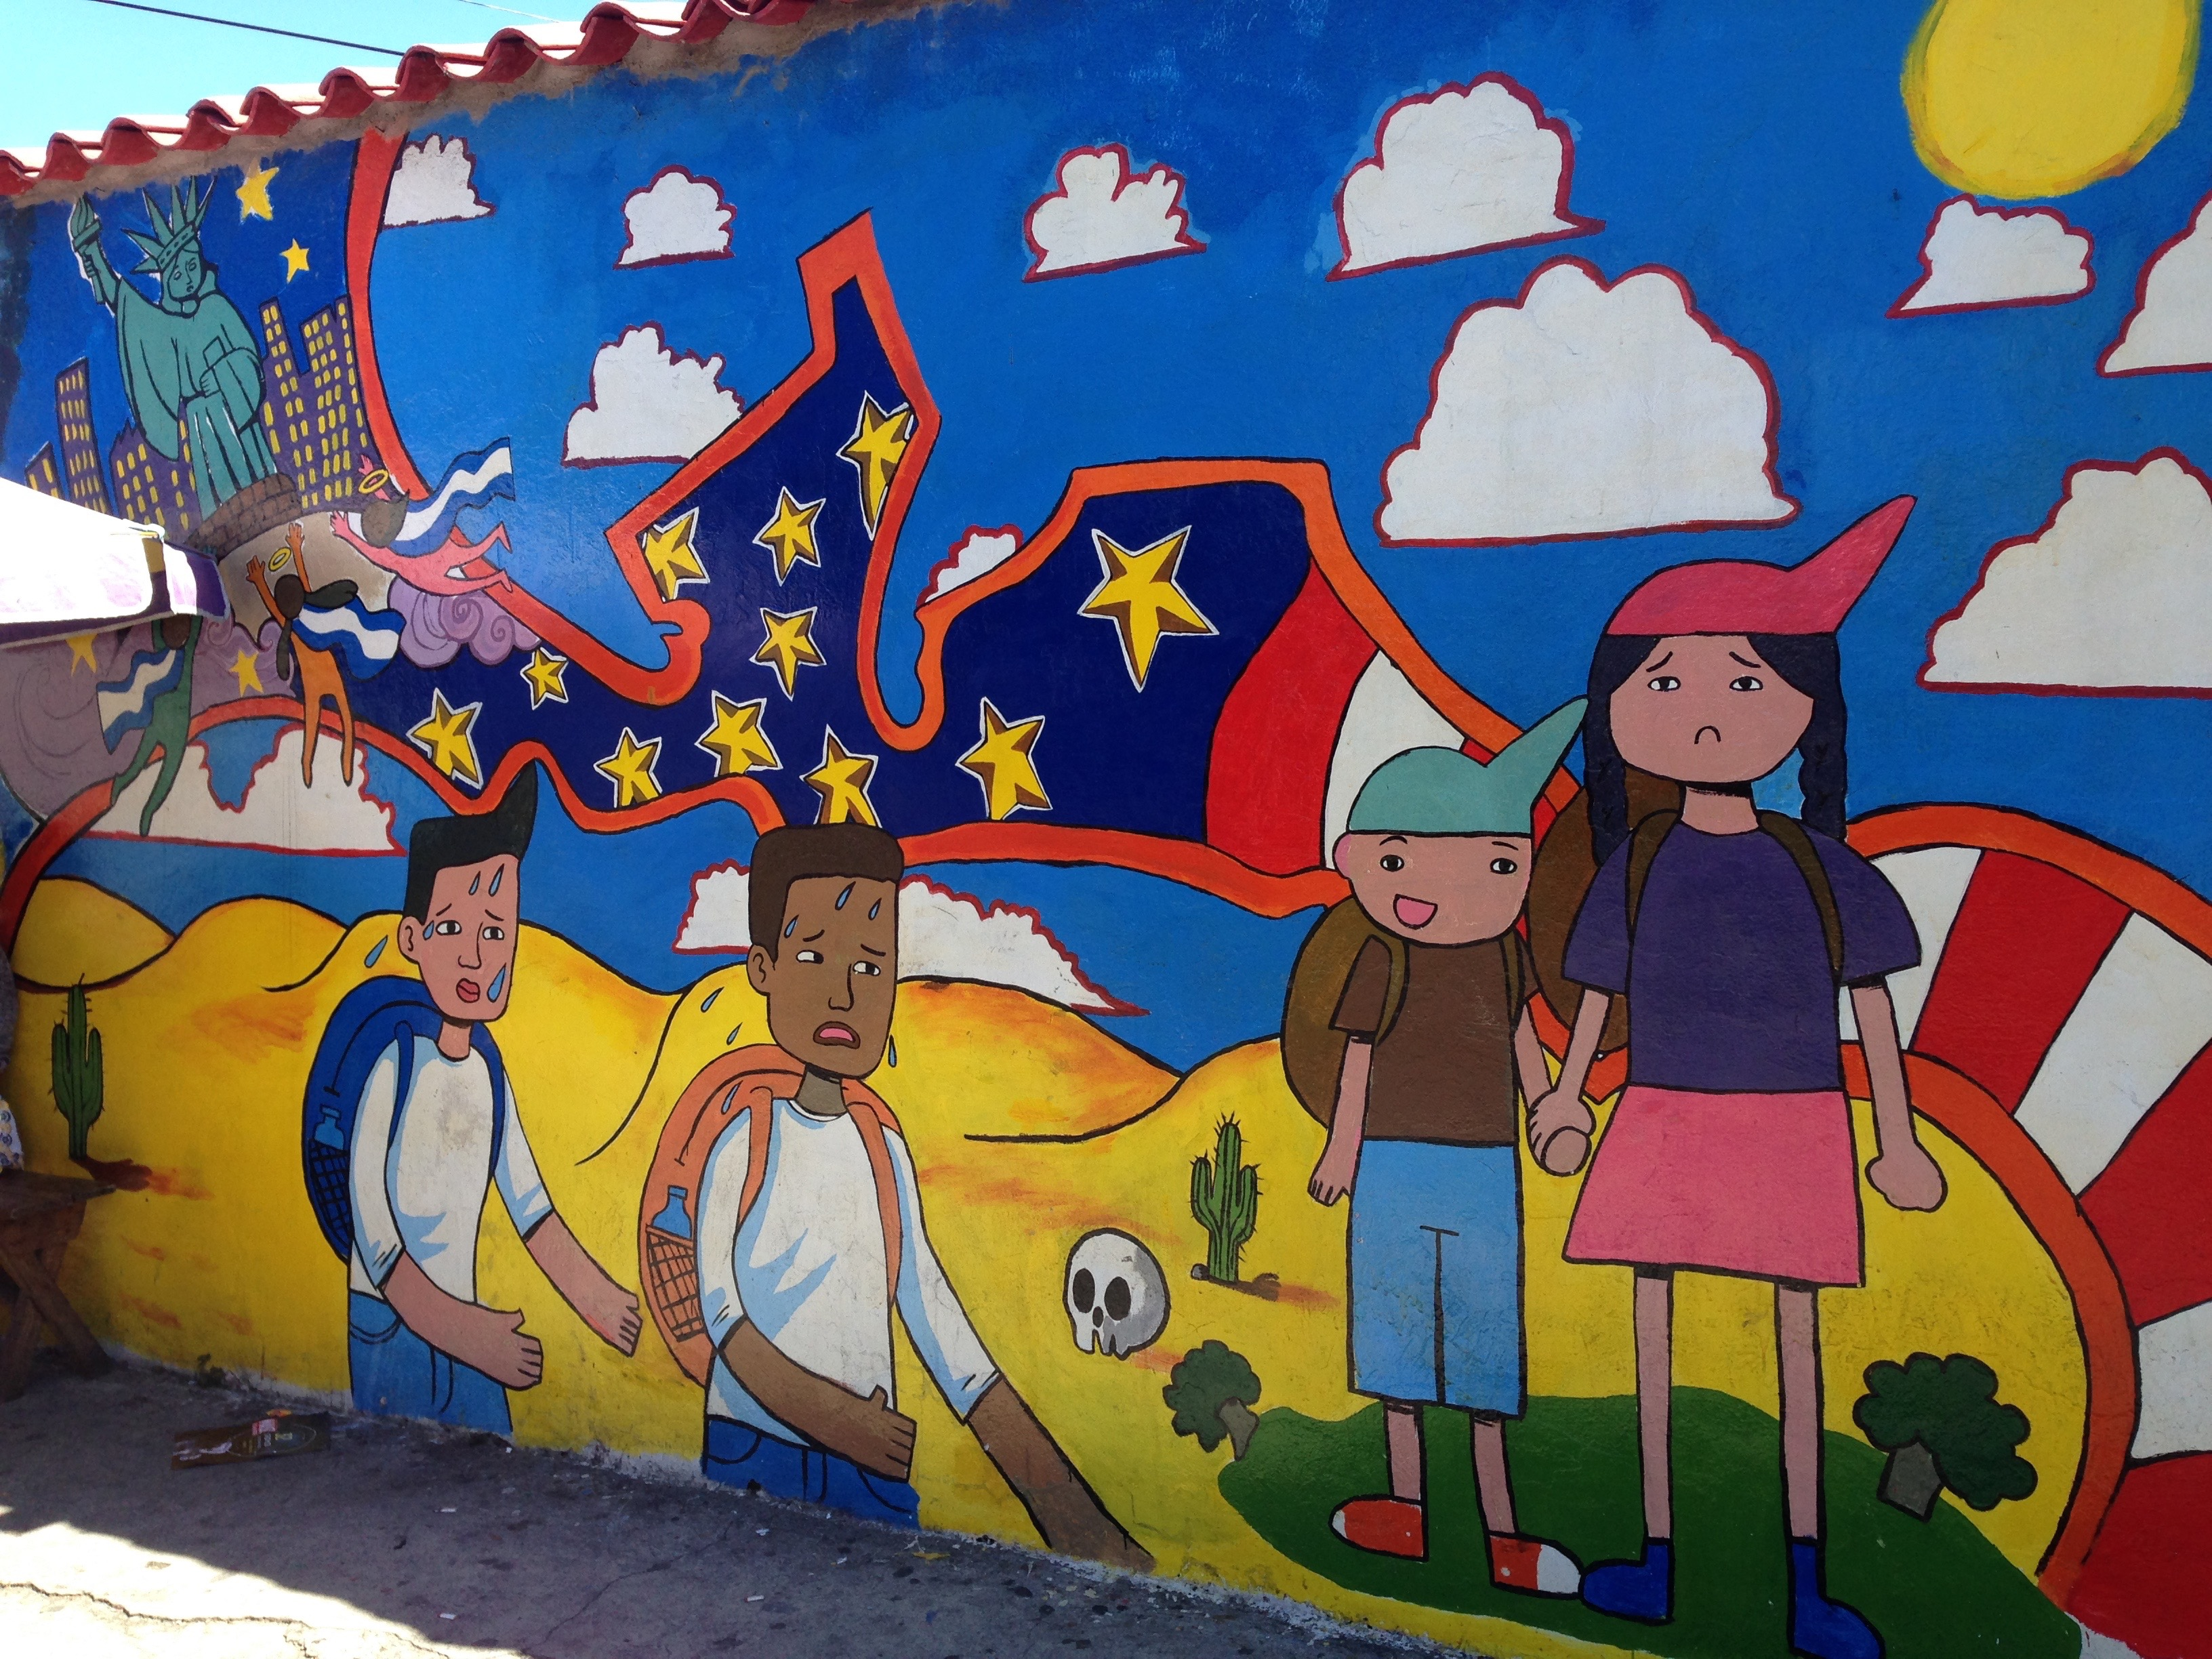 Migration-themed mural outside the city hall of Soyopango, El Salvador